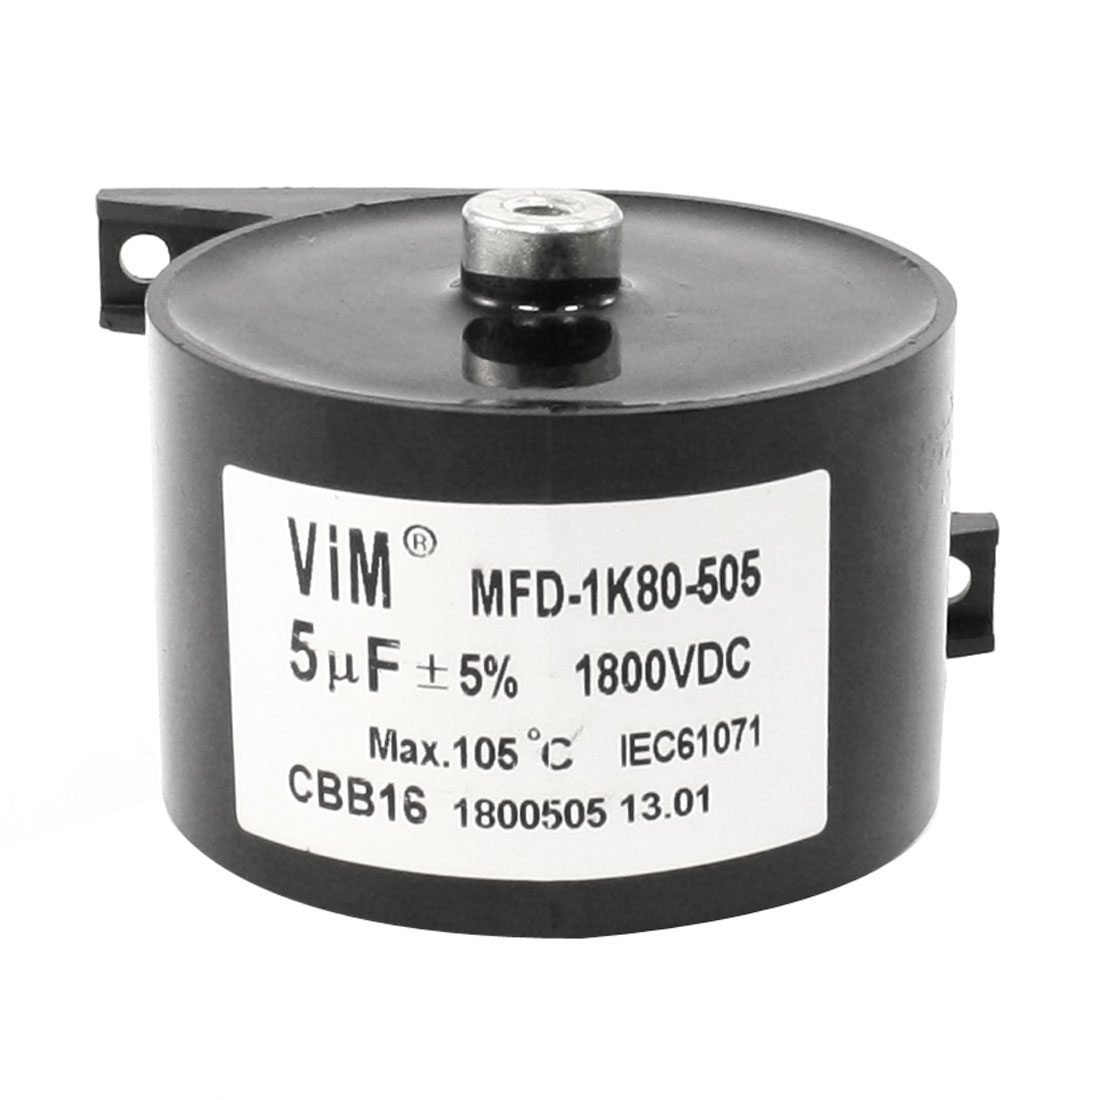 CBB16 DC 1800V 5uF 5% Machine Plastic Housing Motor Capacitor